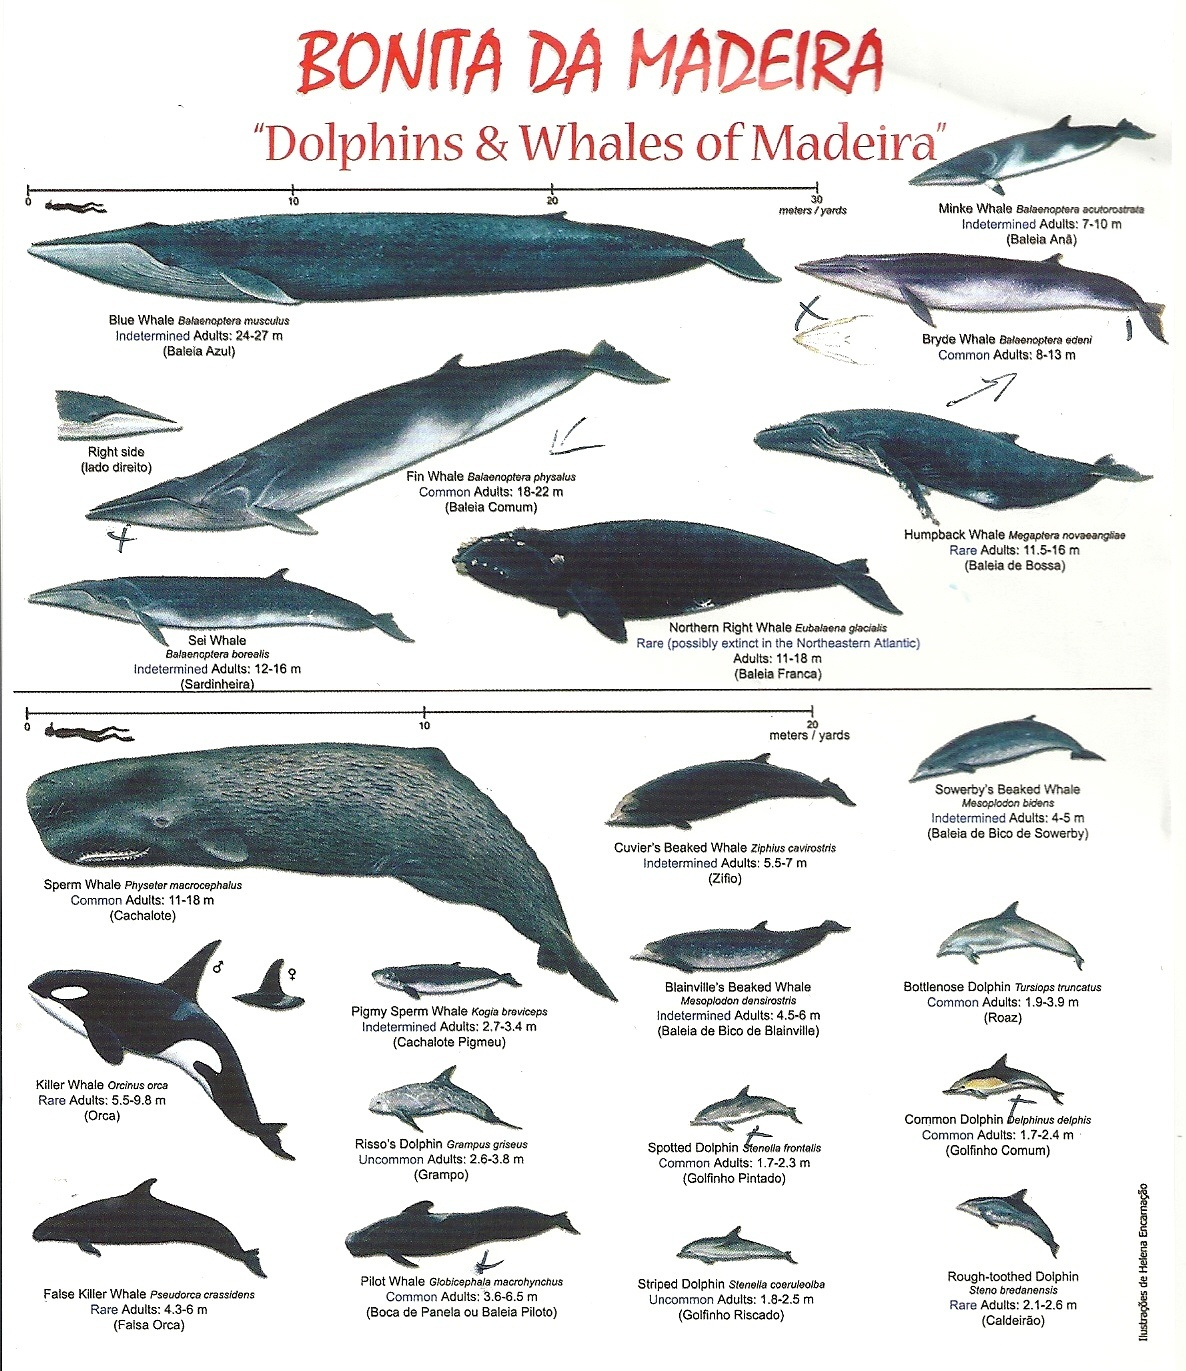 Dolphins and Whales of Madeira